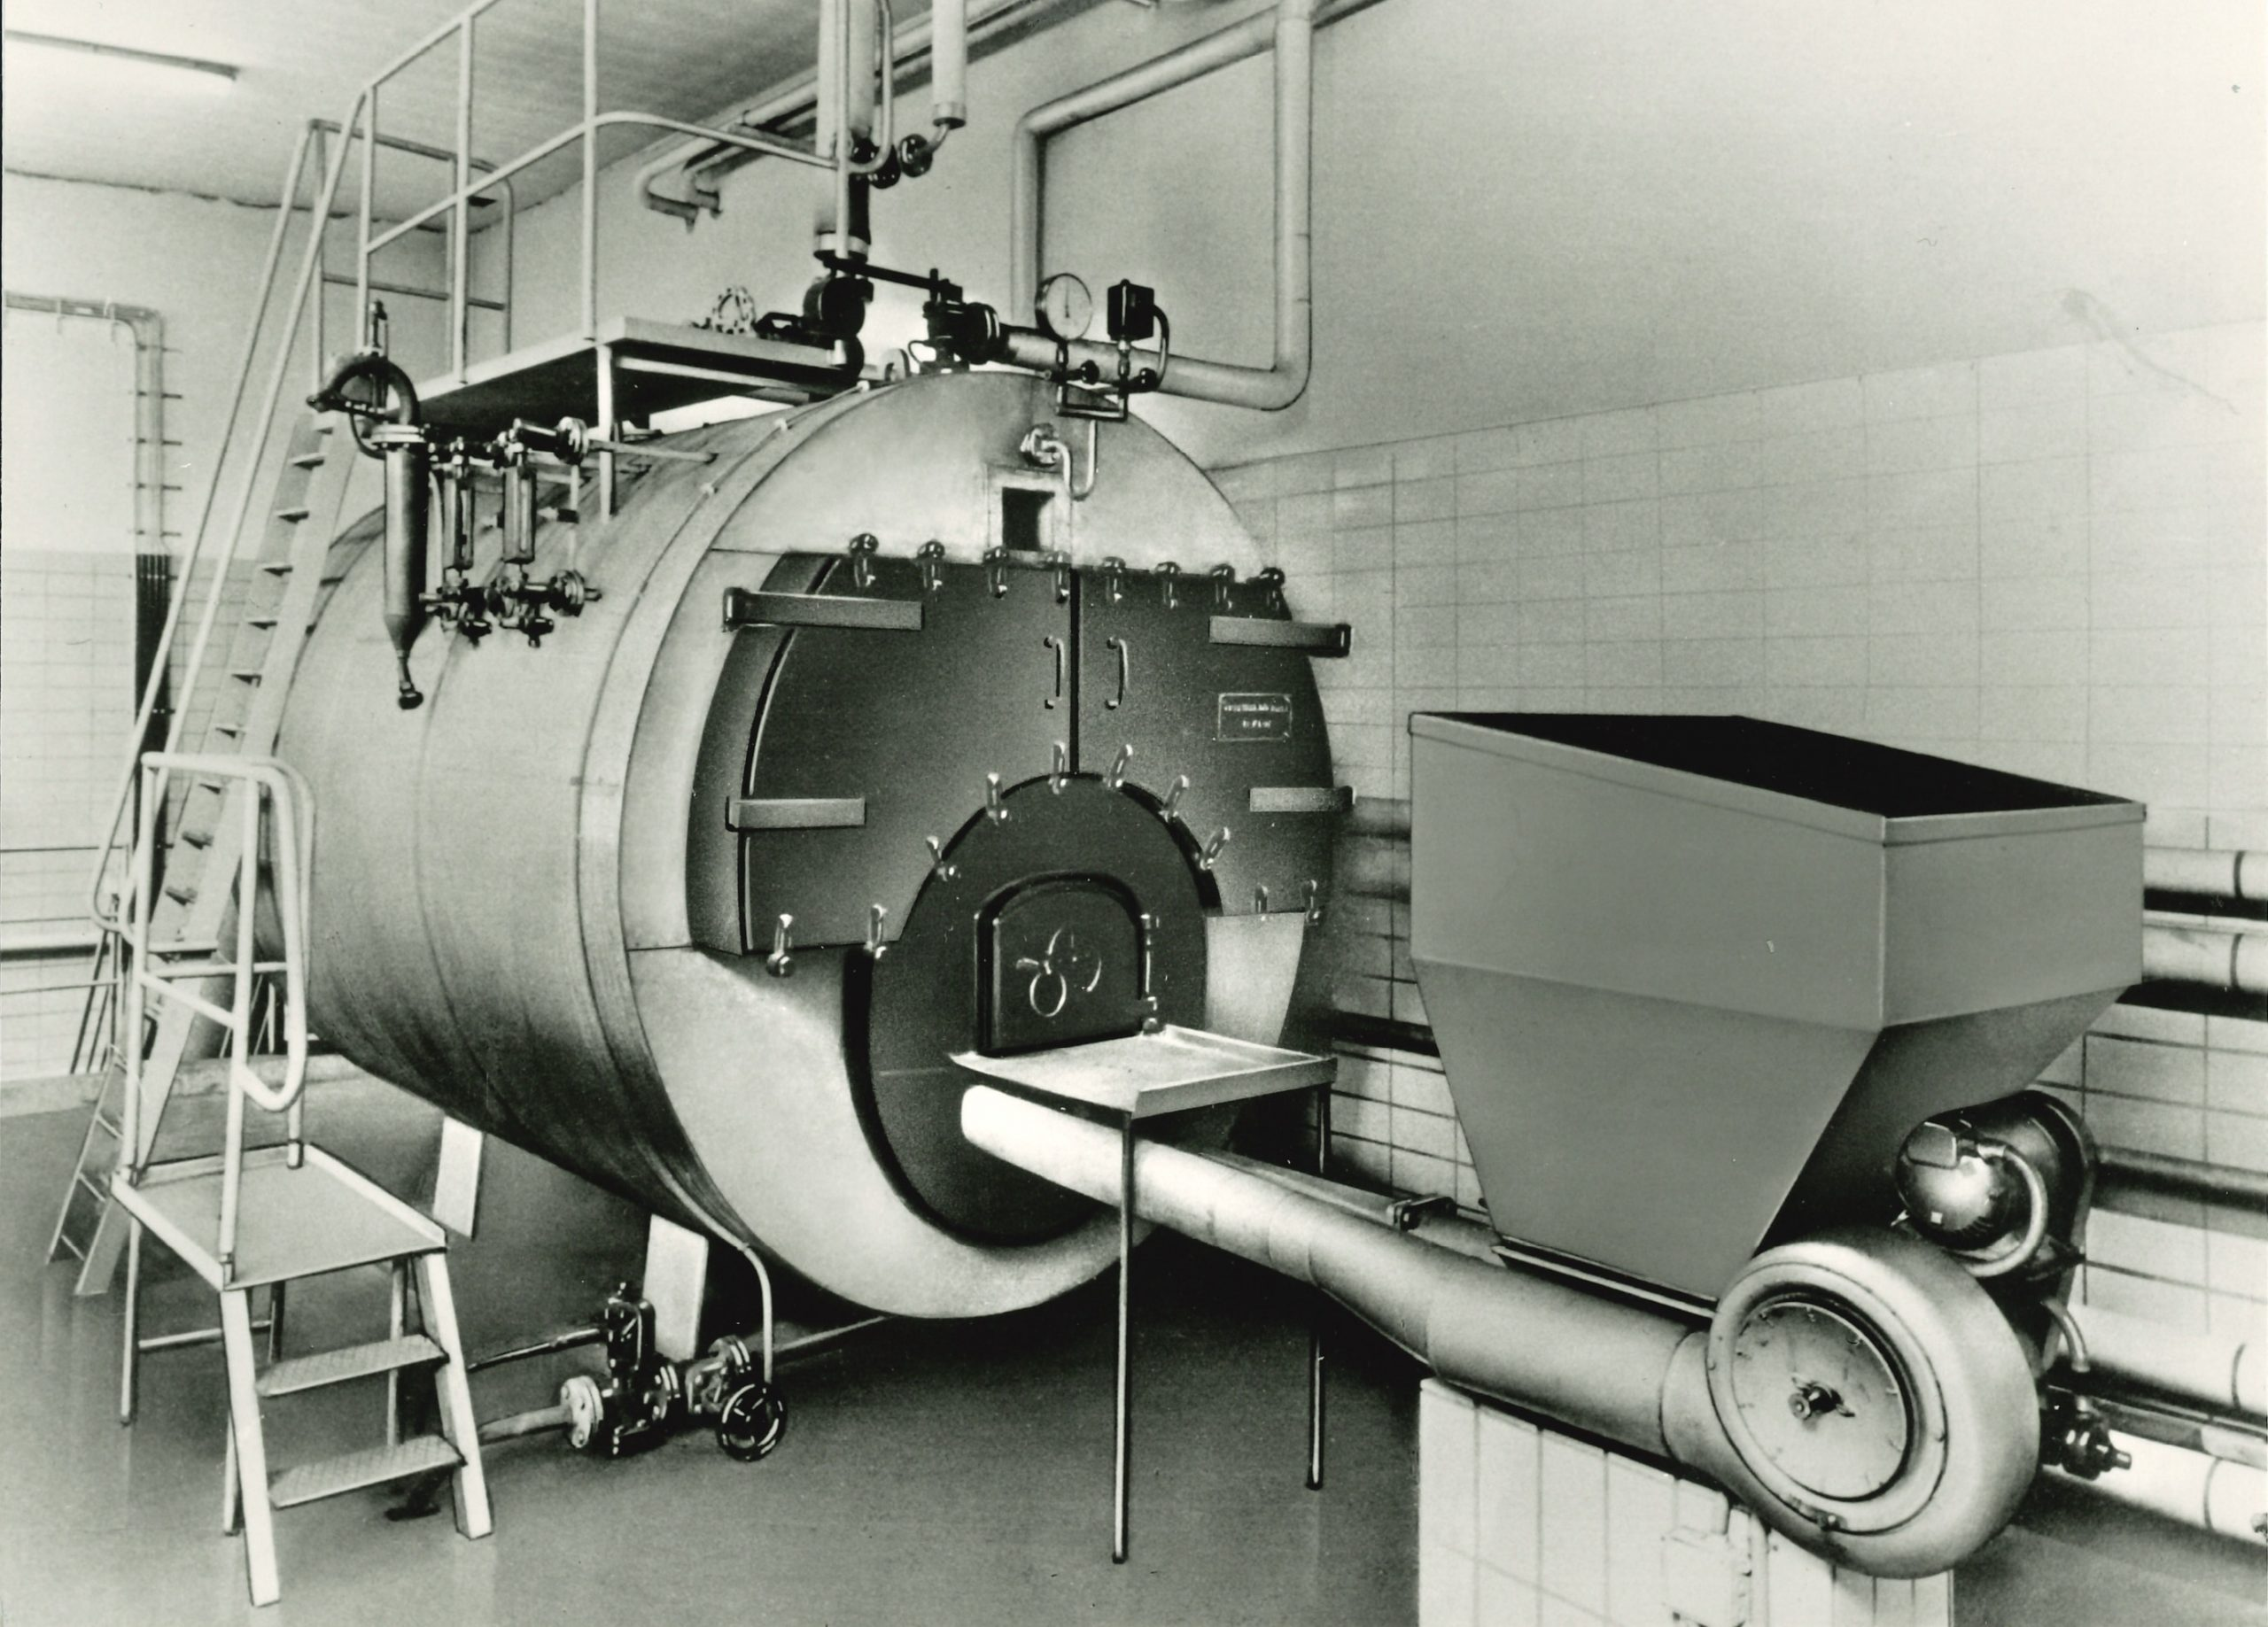 Coal-fired 3 t / h three-pass boiler with underfeed firing (1957)